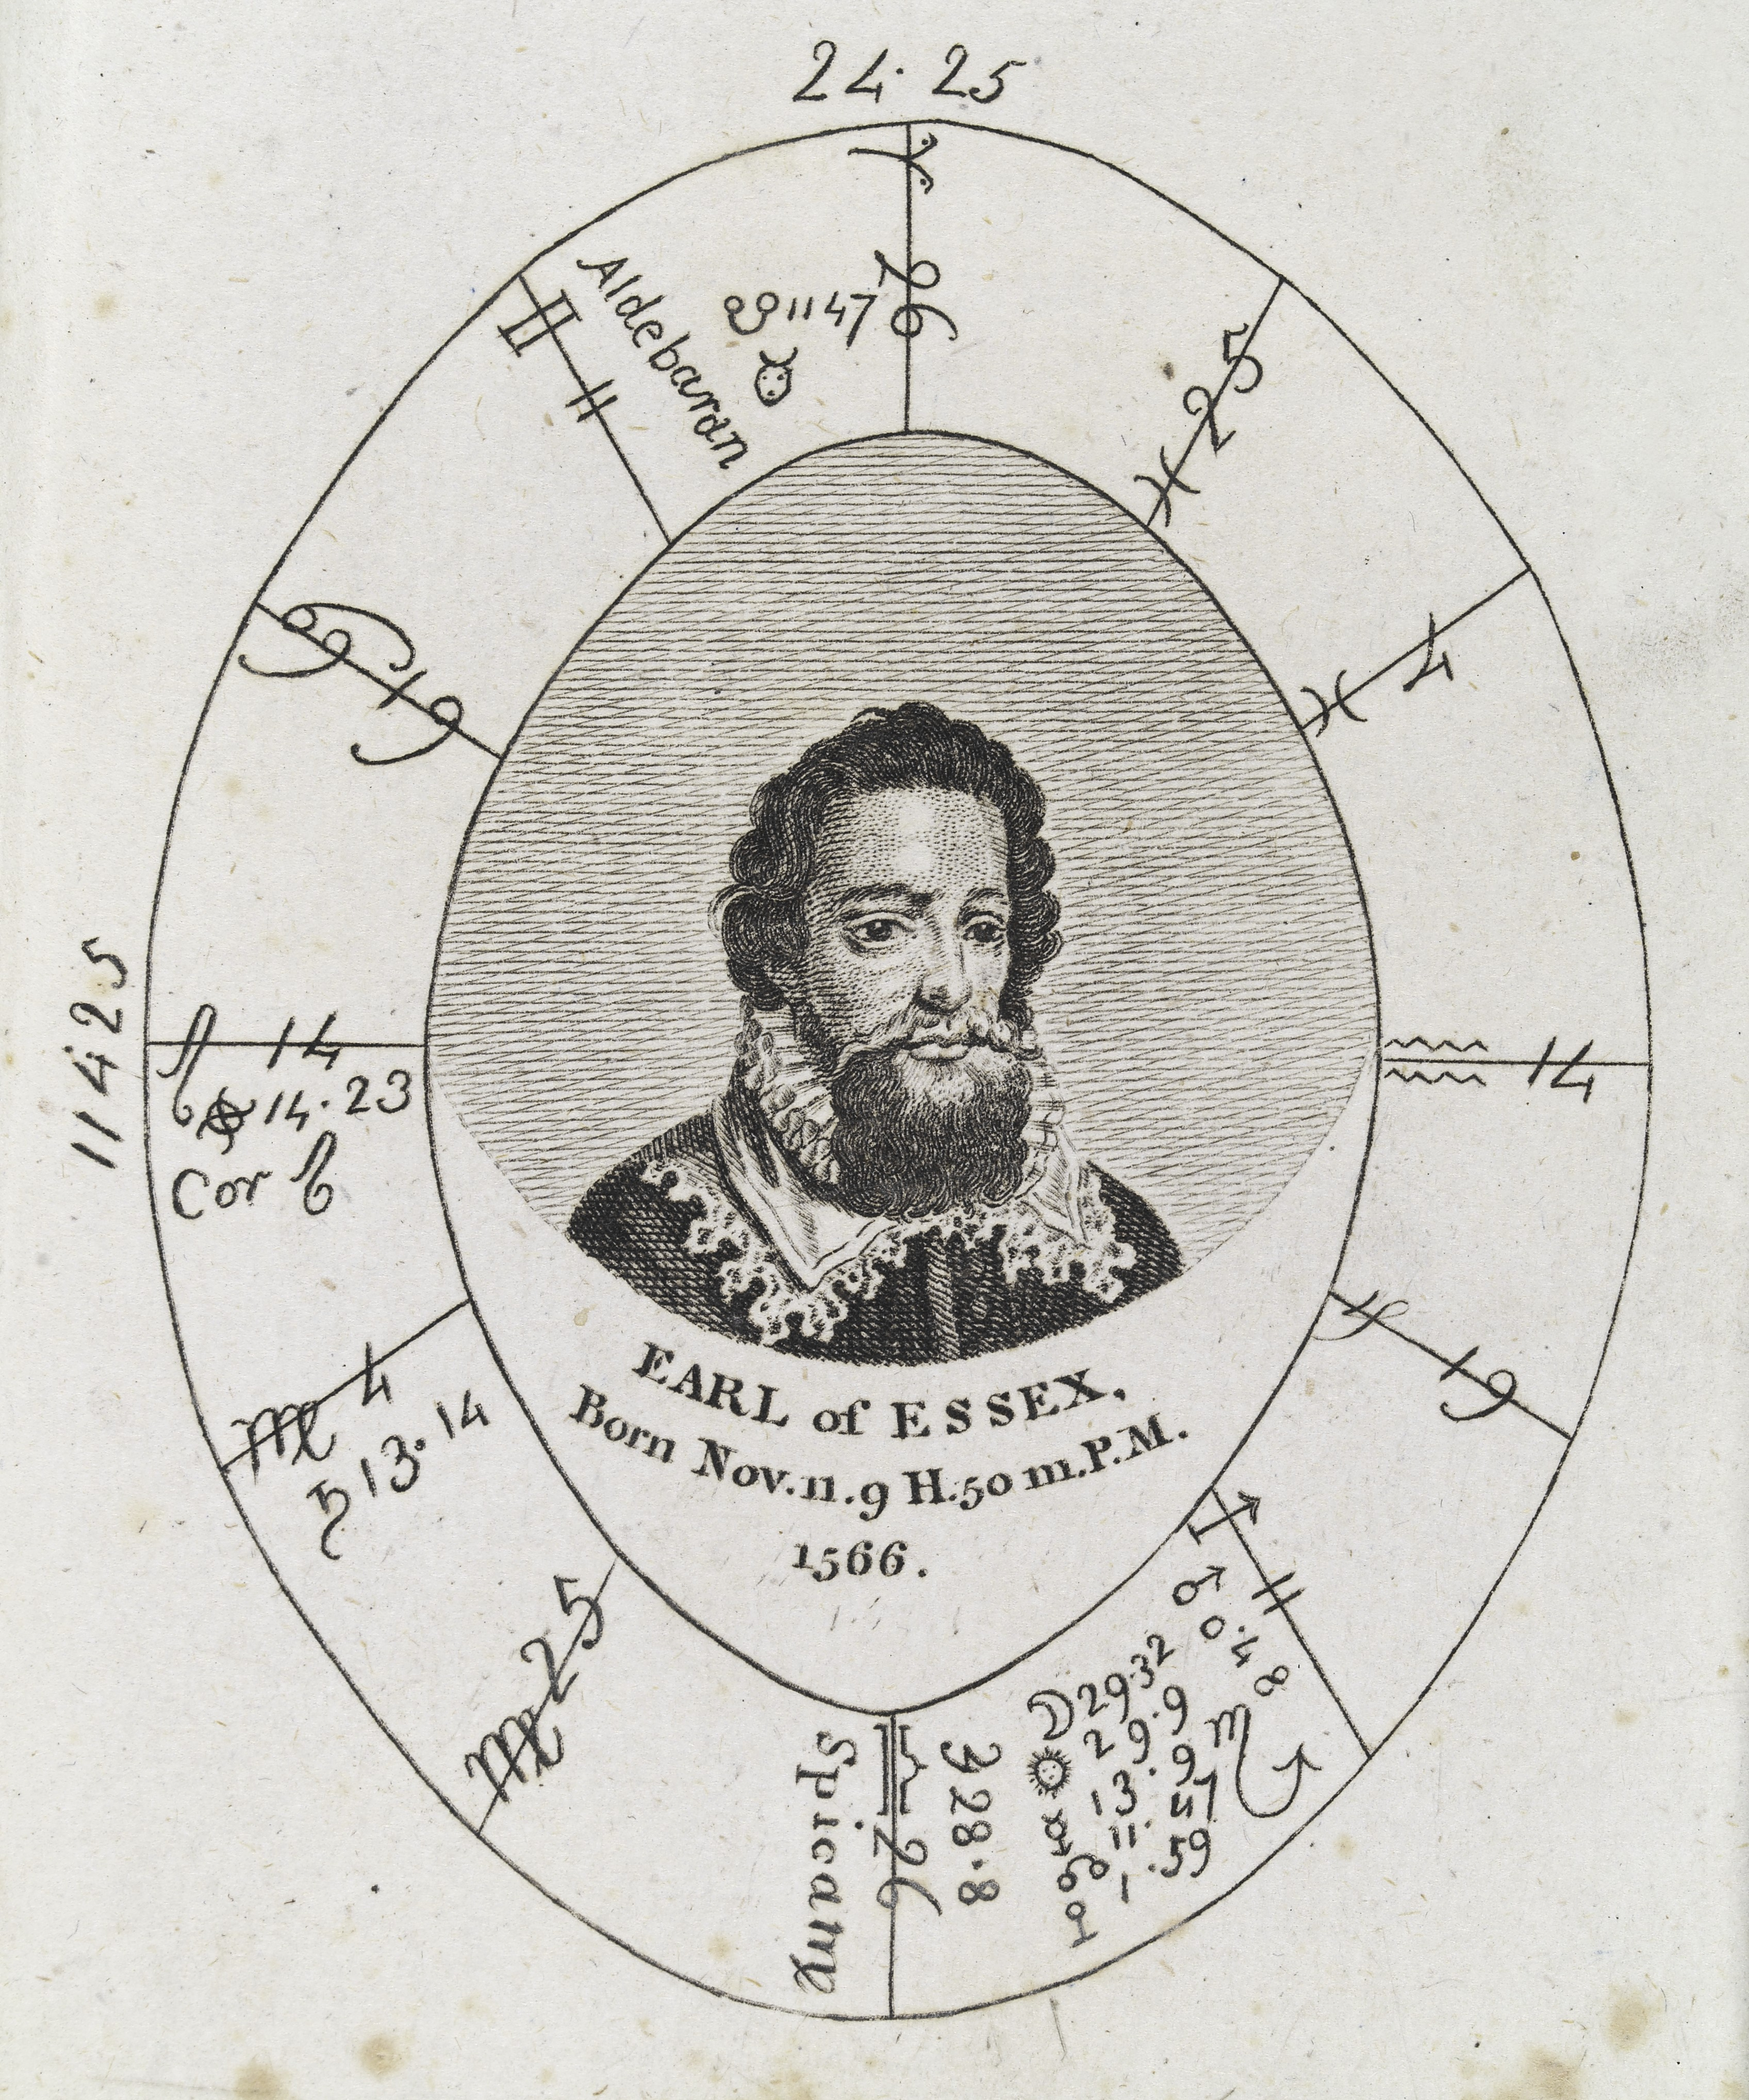 Chart Birthday Astrology: Astrological birth chart for Earl of Essex Wellcome L0040353 ,Chart